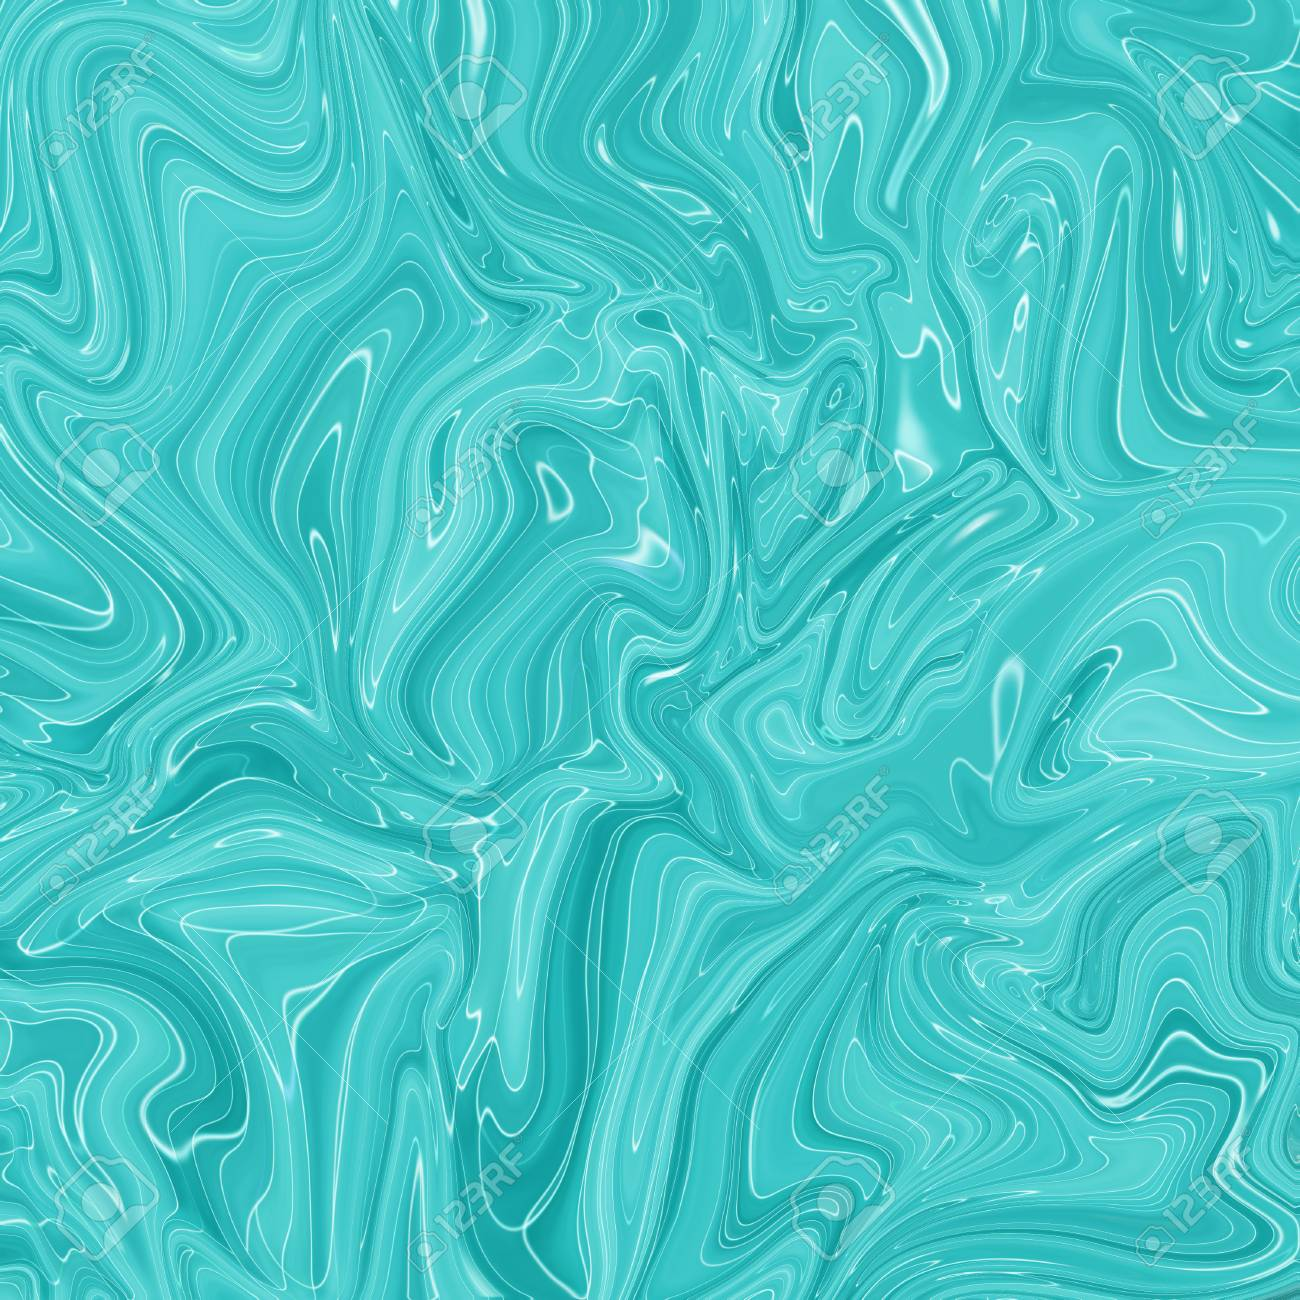 Liquid Marbling Paint Texture Background Fluid Painting Abstract Texture Intensive Color Mix Wallpaper